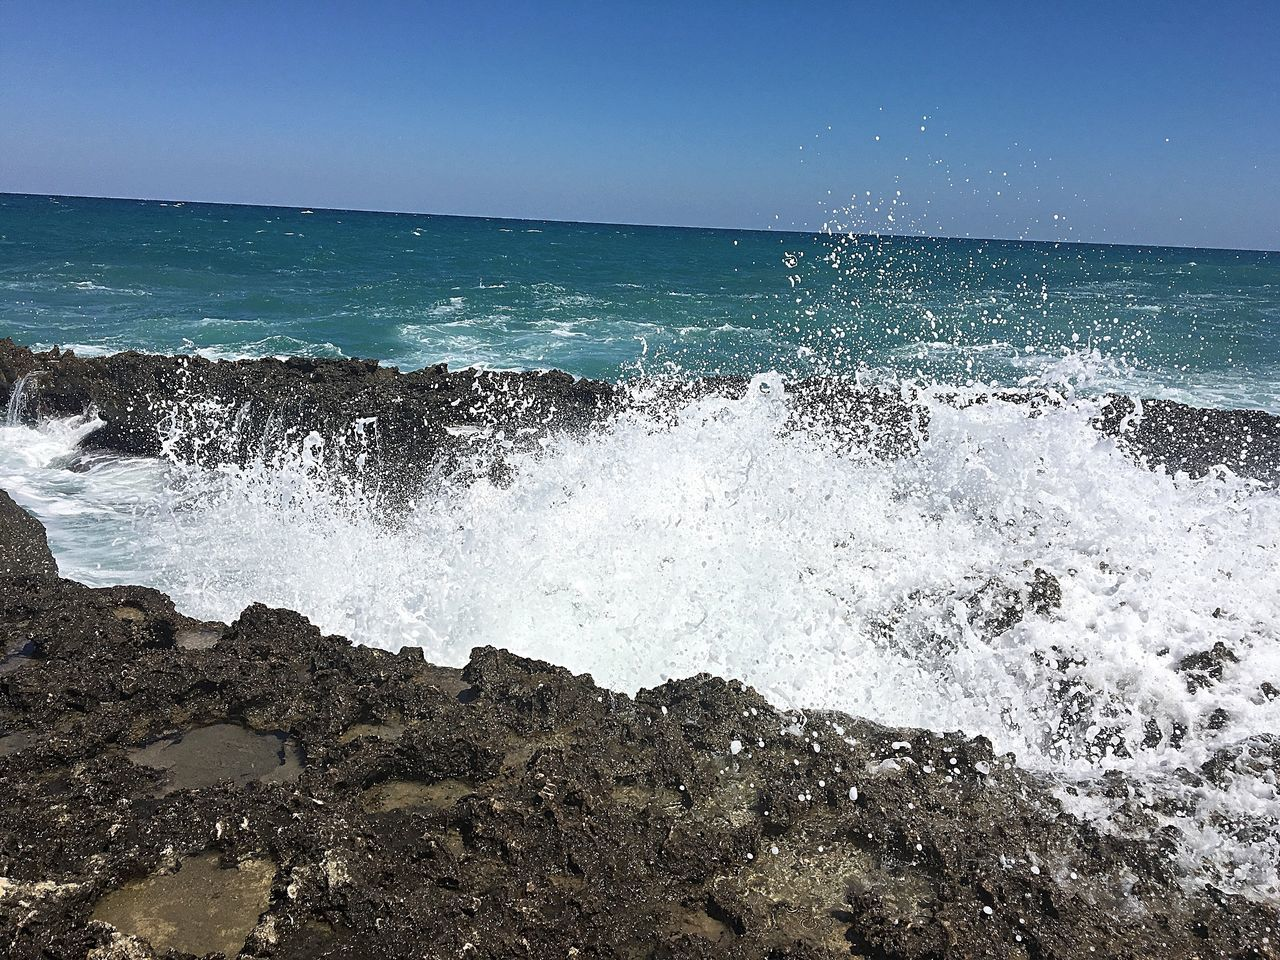 sea, wave, water, horizon over water, beauty in nature, motion, nature, blue, scenics, no people, clear sky, day, power in nature, outdoors, beach, crash, sky, force